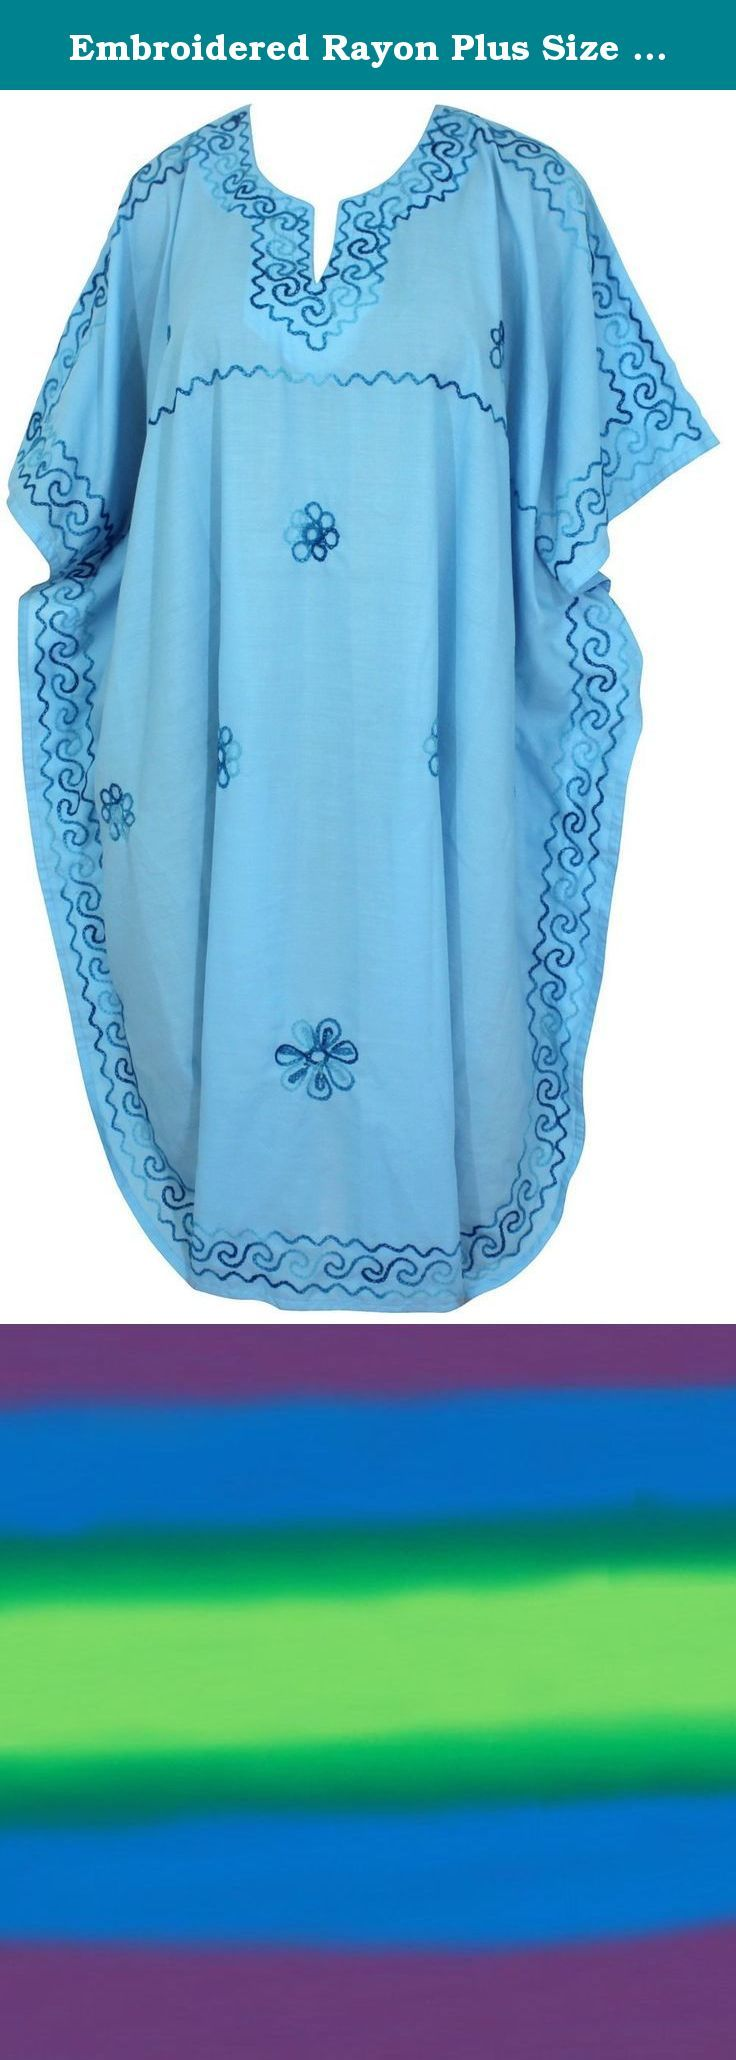 "Embroidered Rayon Plus Size Plus Size Caftan Women Light Blue Loose Nightwear Valentines Day Gifts 2017. Description:- ==> Welcome to LA LEELA ==> Enjoy Beach, Breeze and Nature with La Leela's ""VIBRANT BEACH COLLECTION"" and stay calm and classy! . ==> Fabric : DELICATE DESIGNER EMBROIDERED LIGHTWEIGHT SMOOTH RAYON FABRIC US Size : From Regular 10 (M) TO 14 (L) ➤ UK SIZE : FROM REGULAR 14 (M) TO 16 (L) ➤ BUST : 40 Inches [ 101 cms ]➤ Length : 36 Inches [ 91 cms ] ==> Clothing Type…"